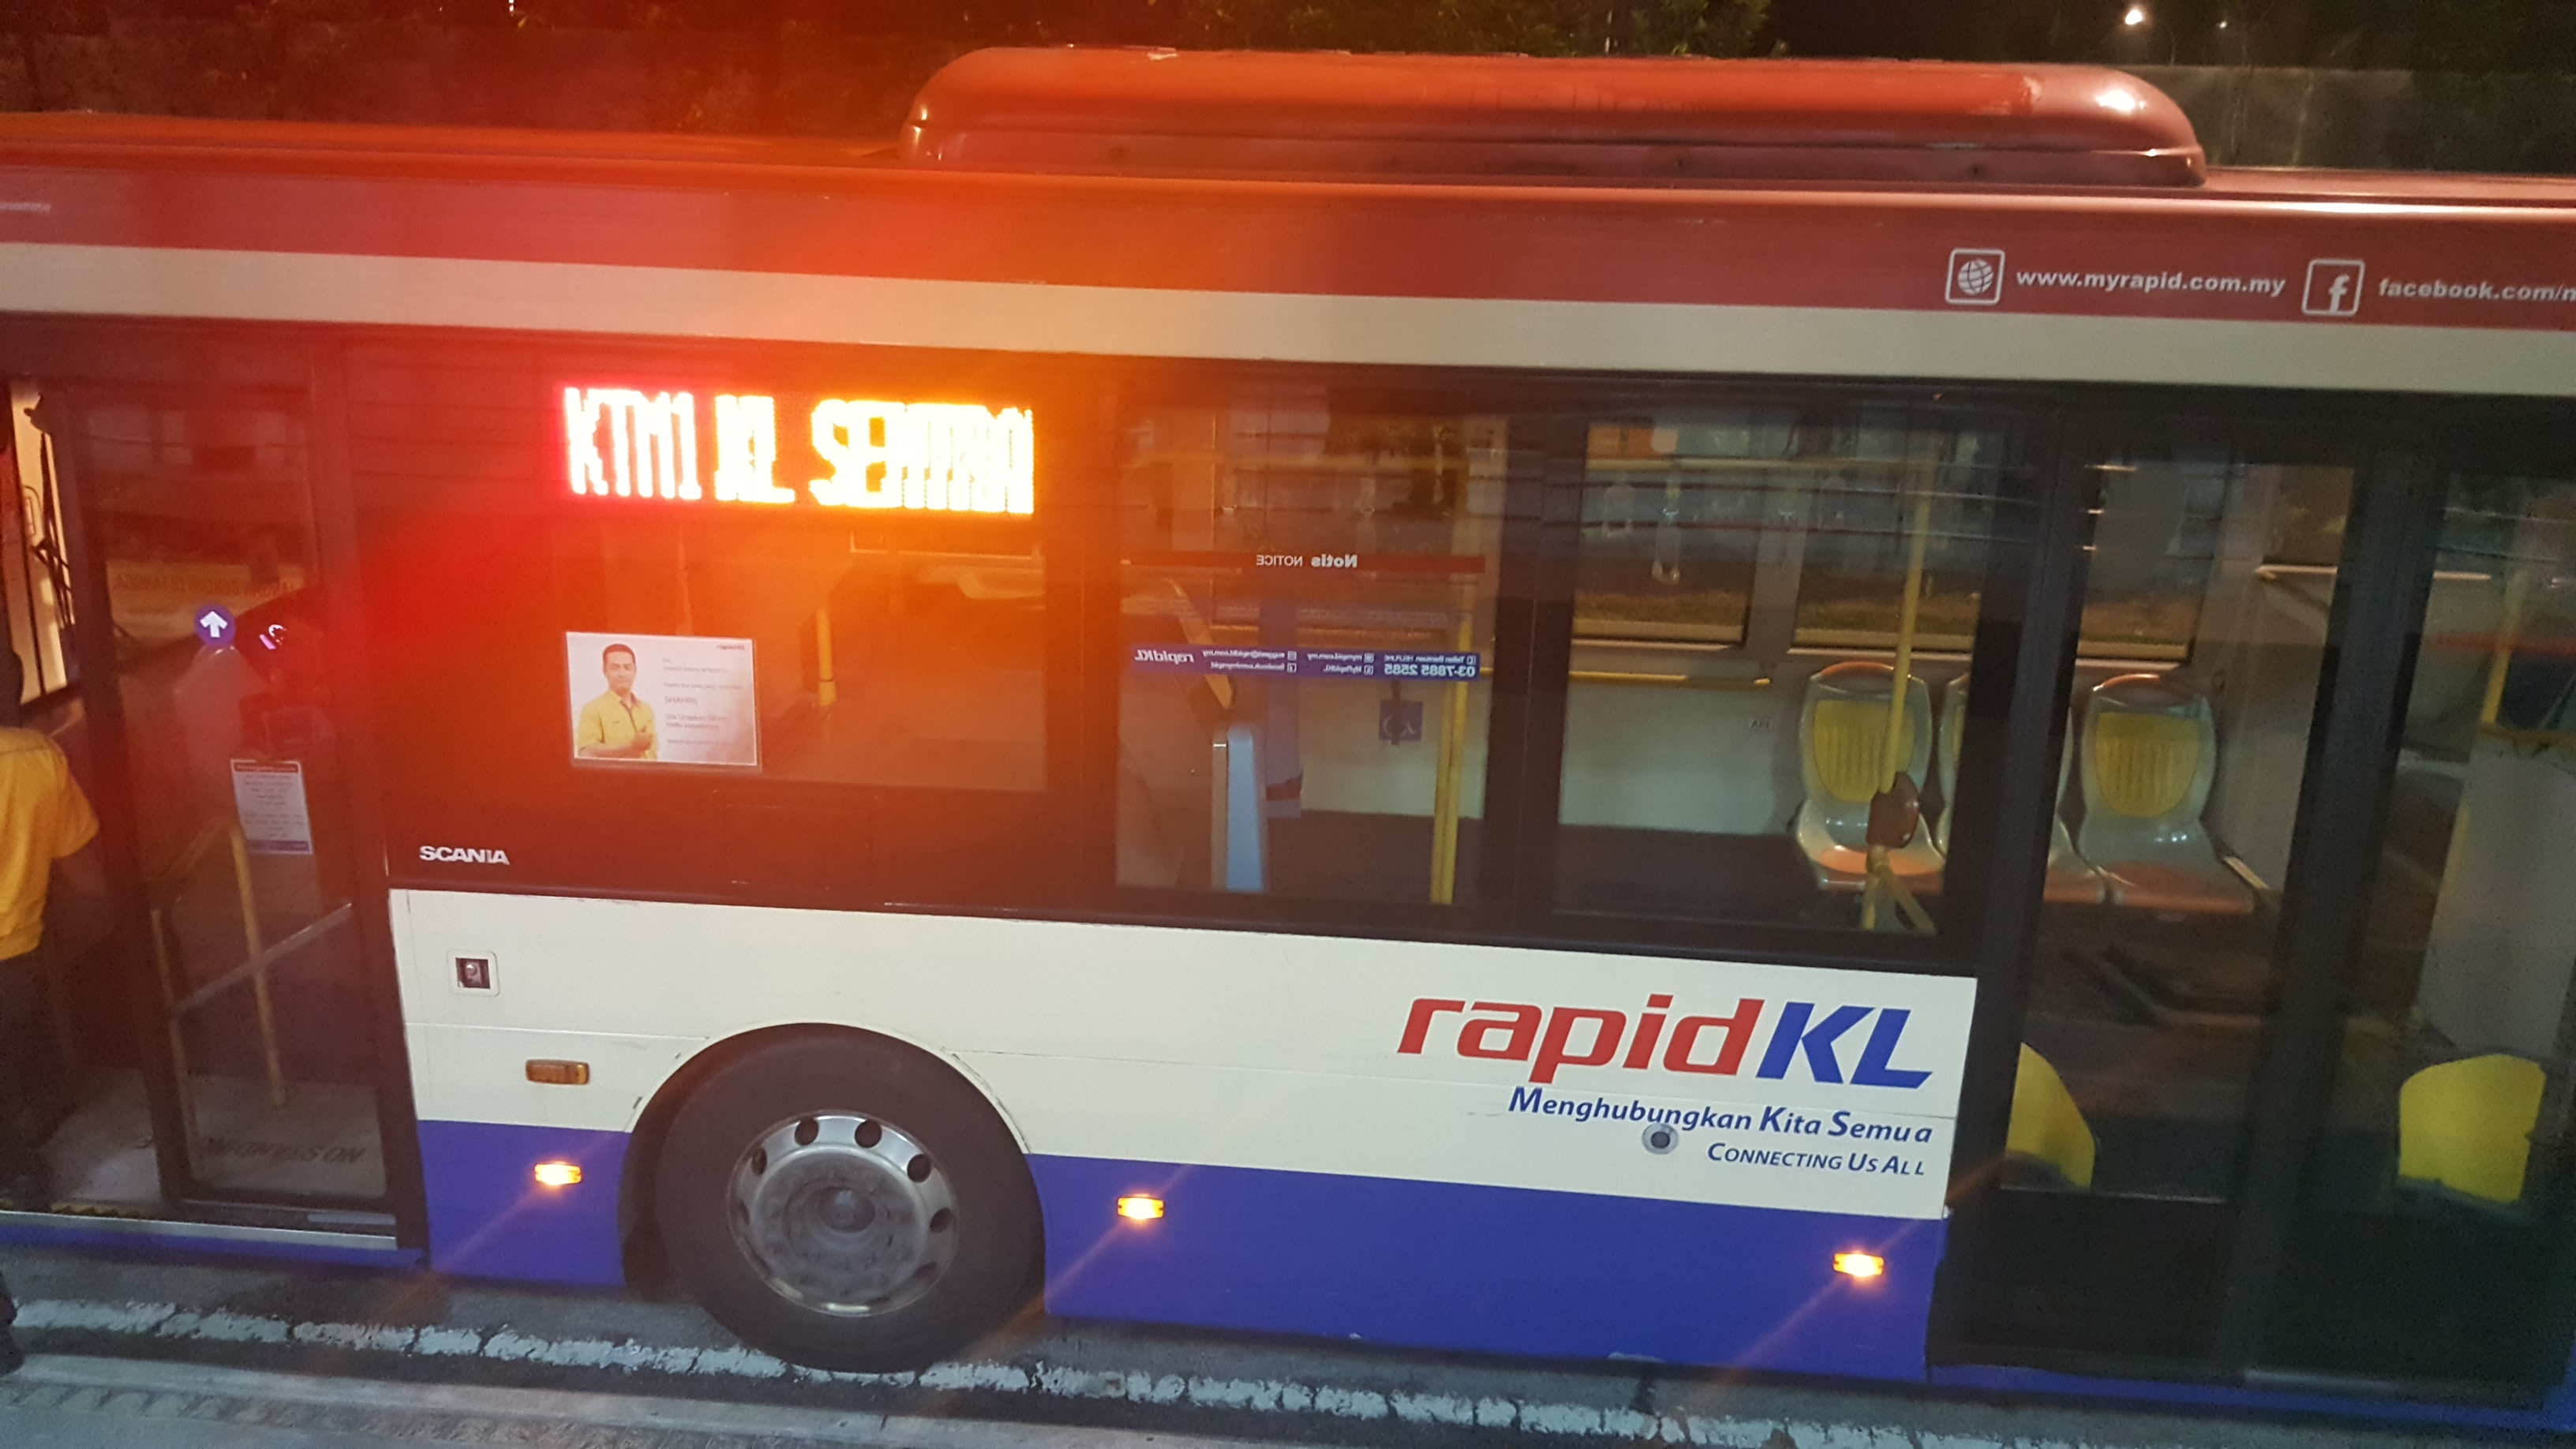 Rapid KL Bus to Sentul Station from KL Sentral